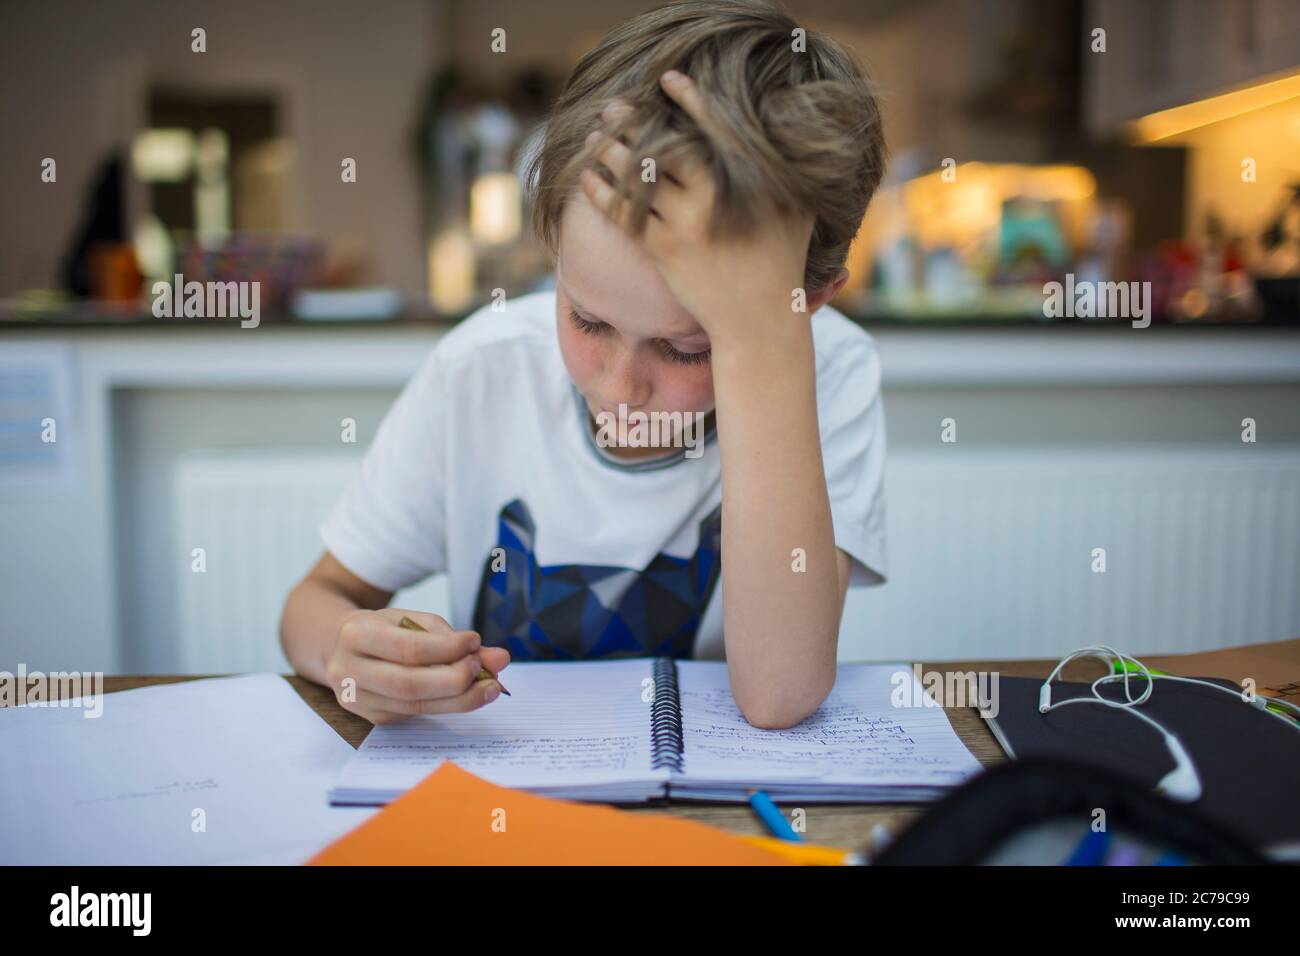 Focused boy doing homework at table Stock Photo